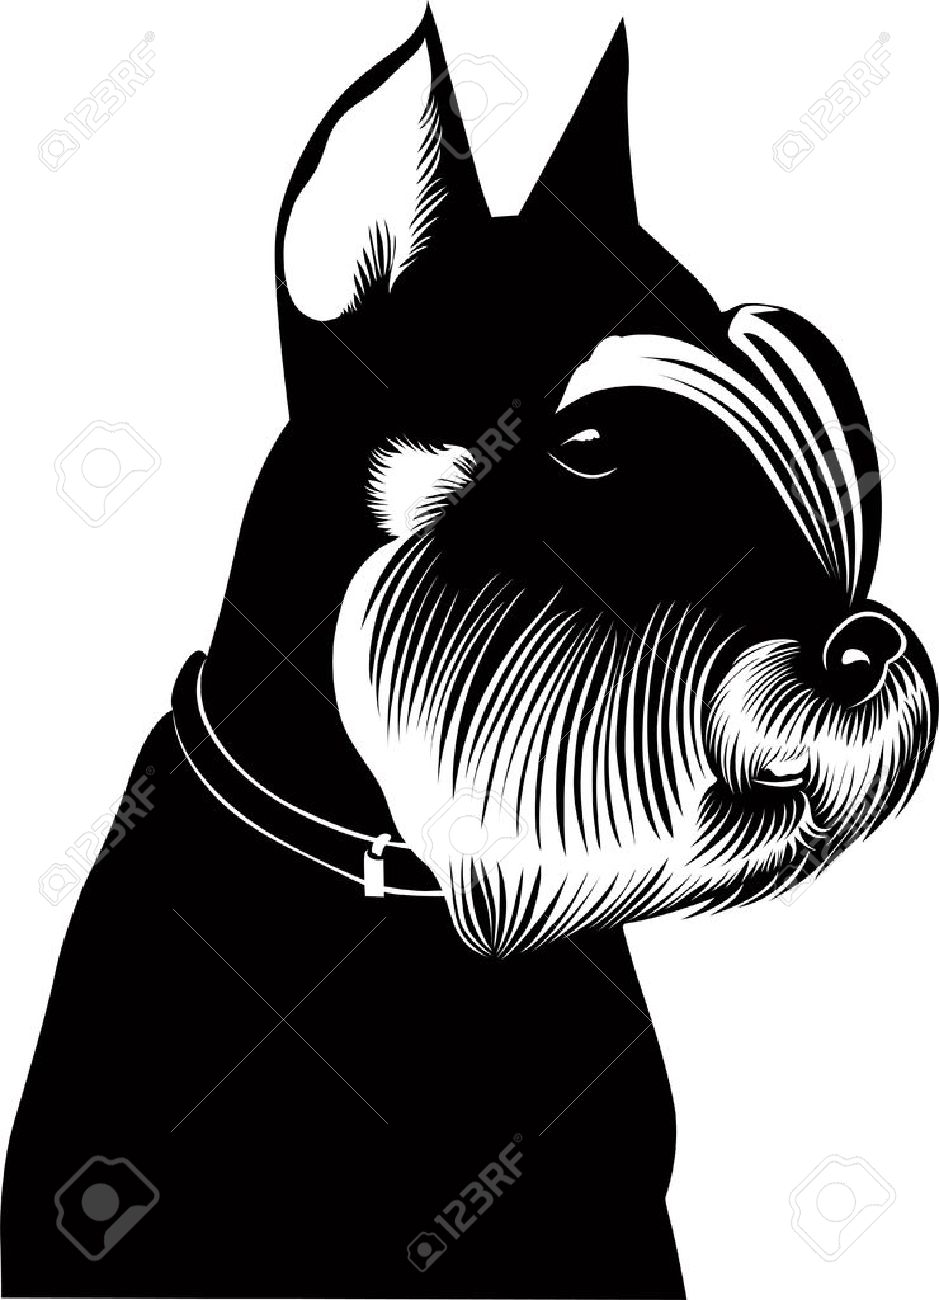 miniature schnauzer puppy dog vector isolated Stock Vector - 20463807